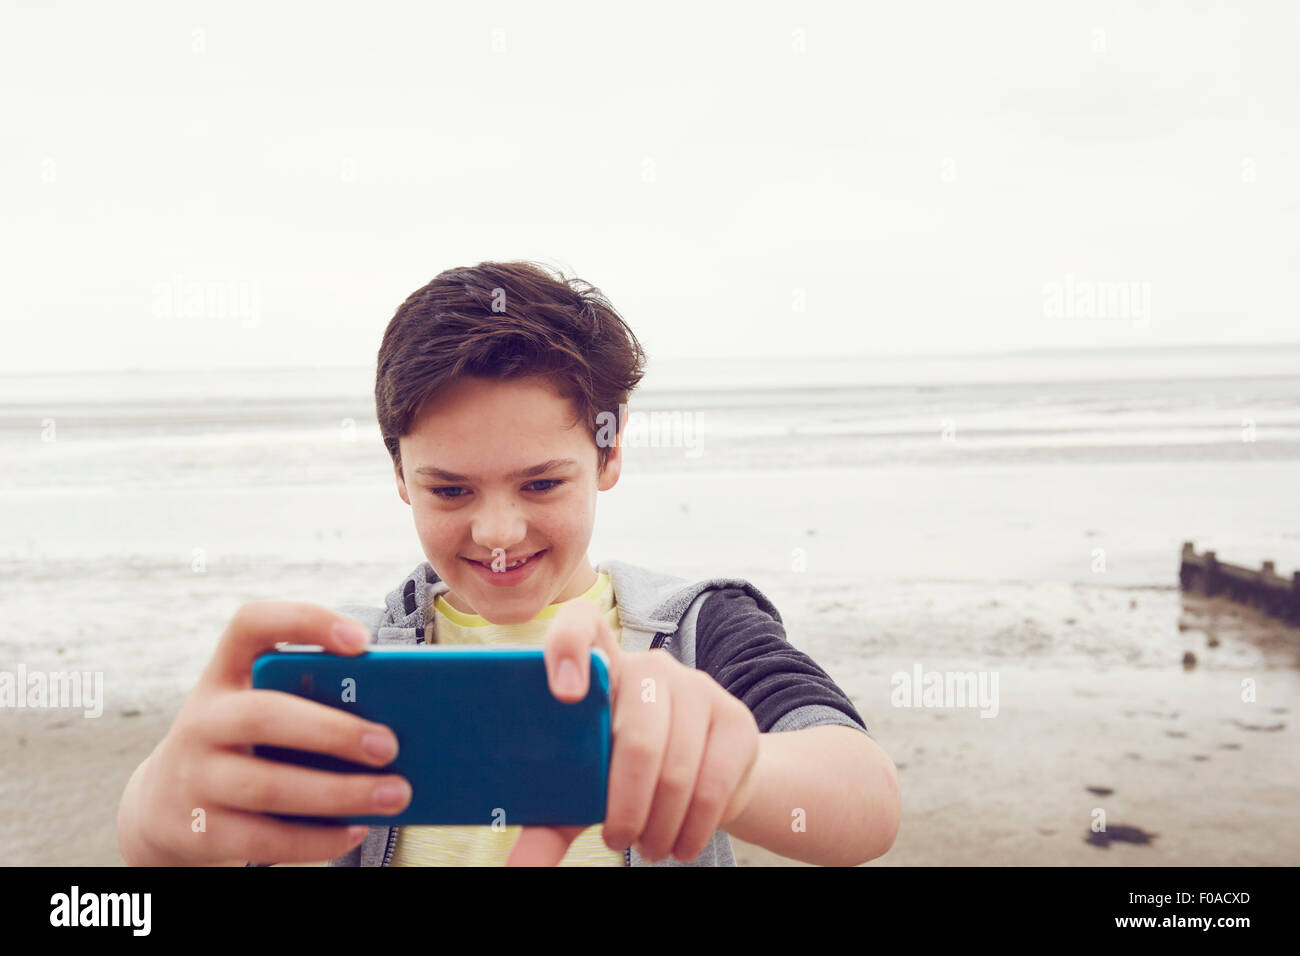 Smiling teenage boy taking selfies smartphone à seaside, Southend on Sea, Essex, UK Photo Stock